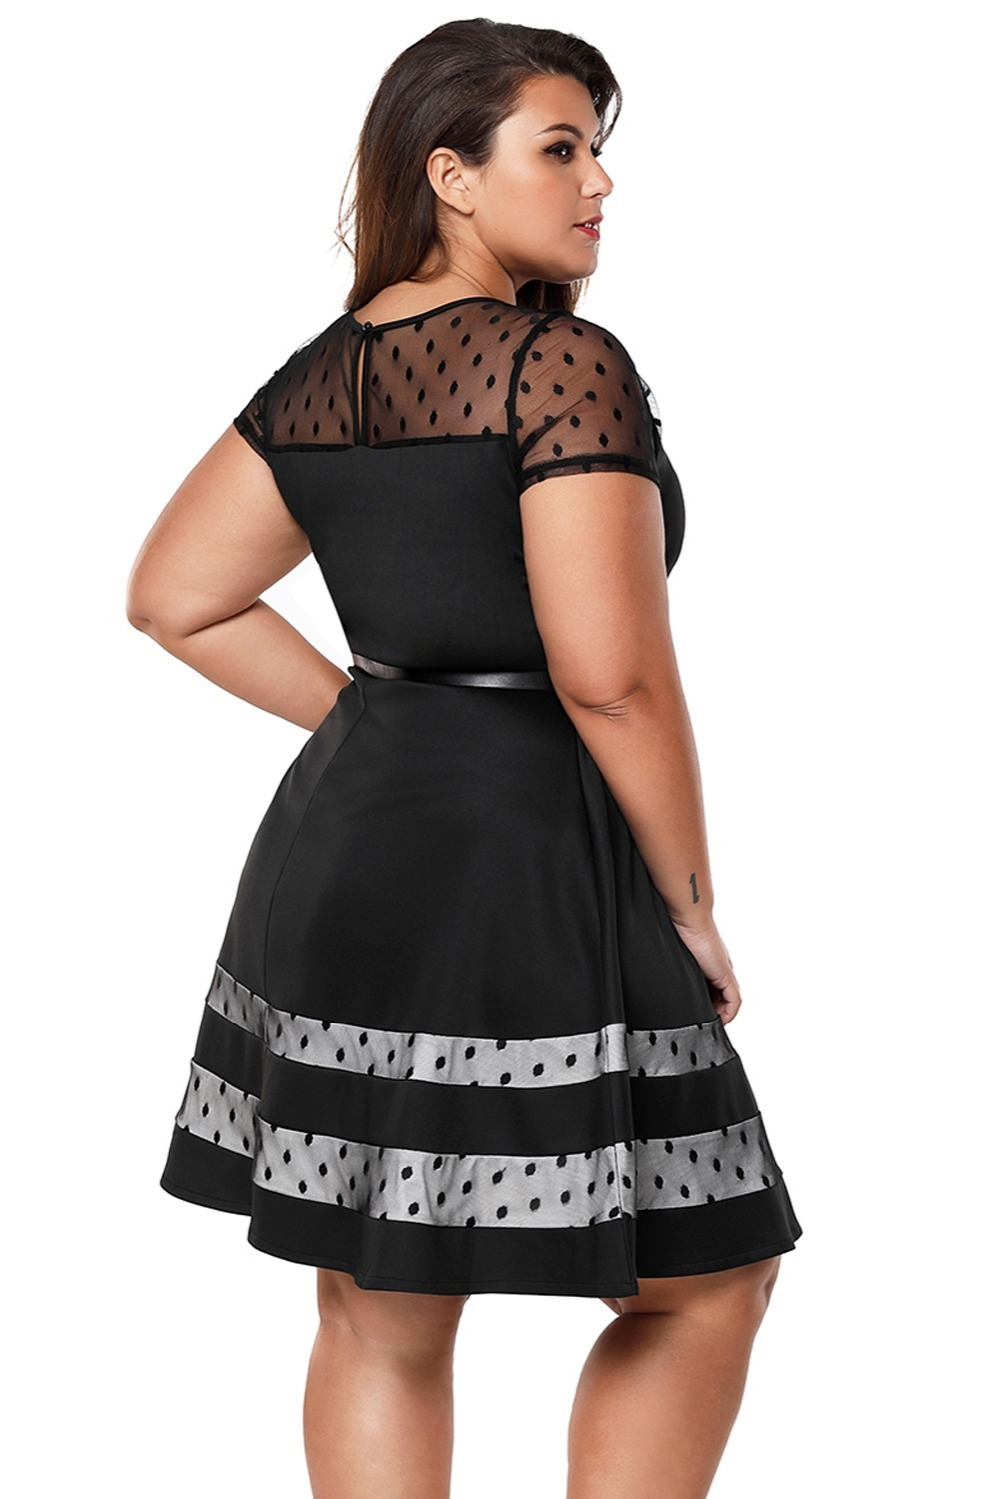 Black-Dotted-Mesh-Insert-Flare-Plus-Size-Dress-with-Belt-LC61970-2-4